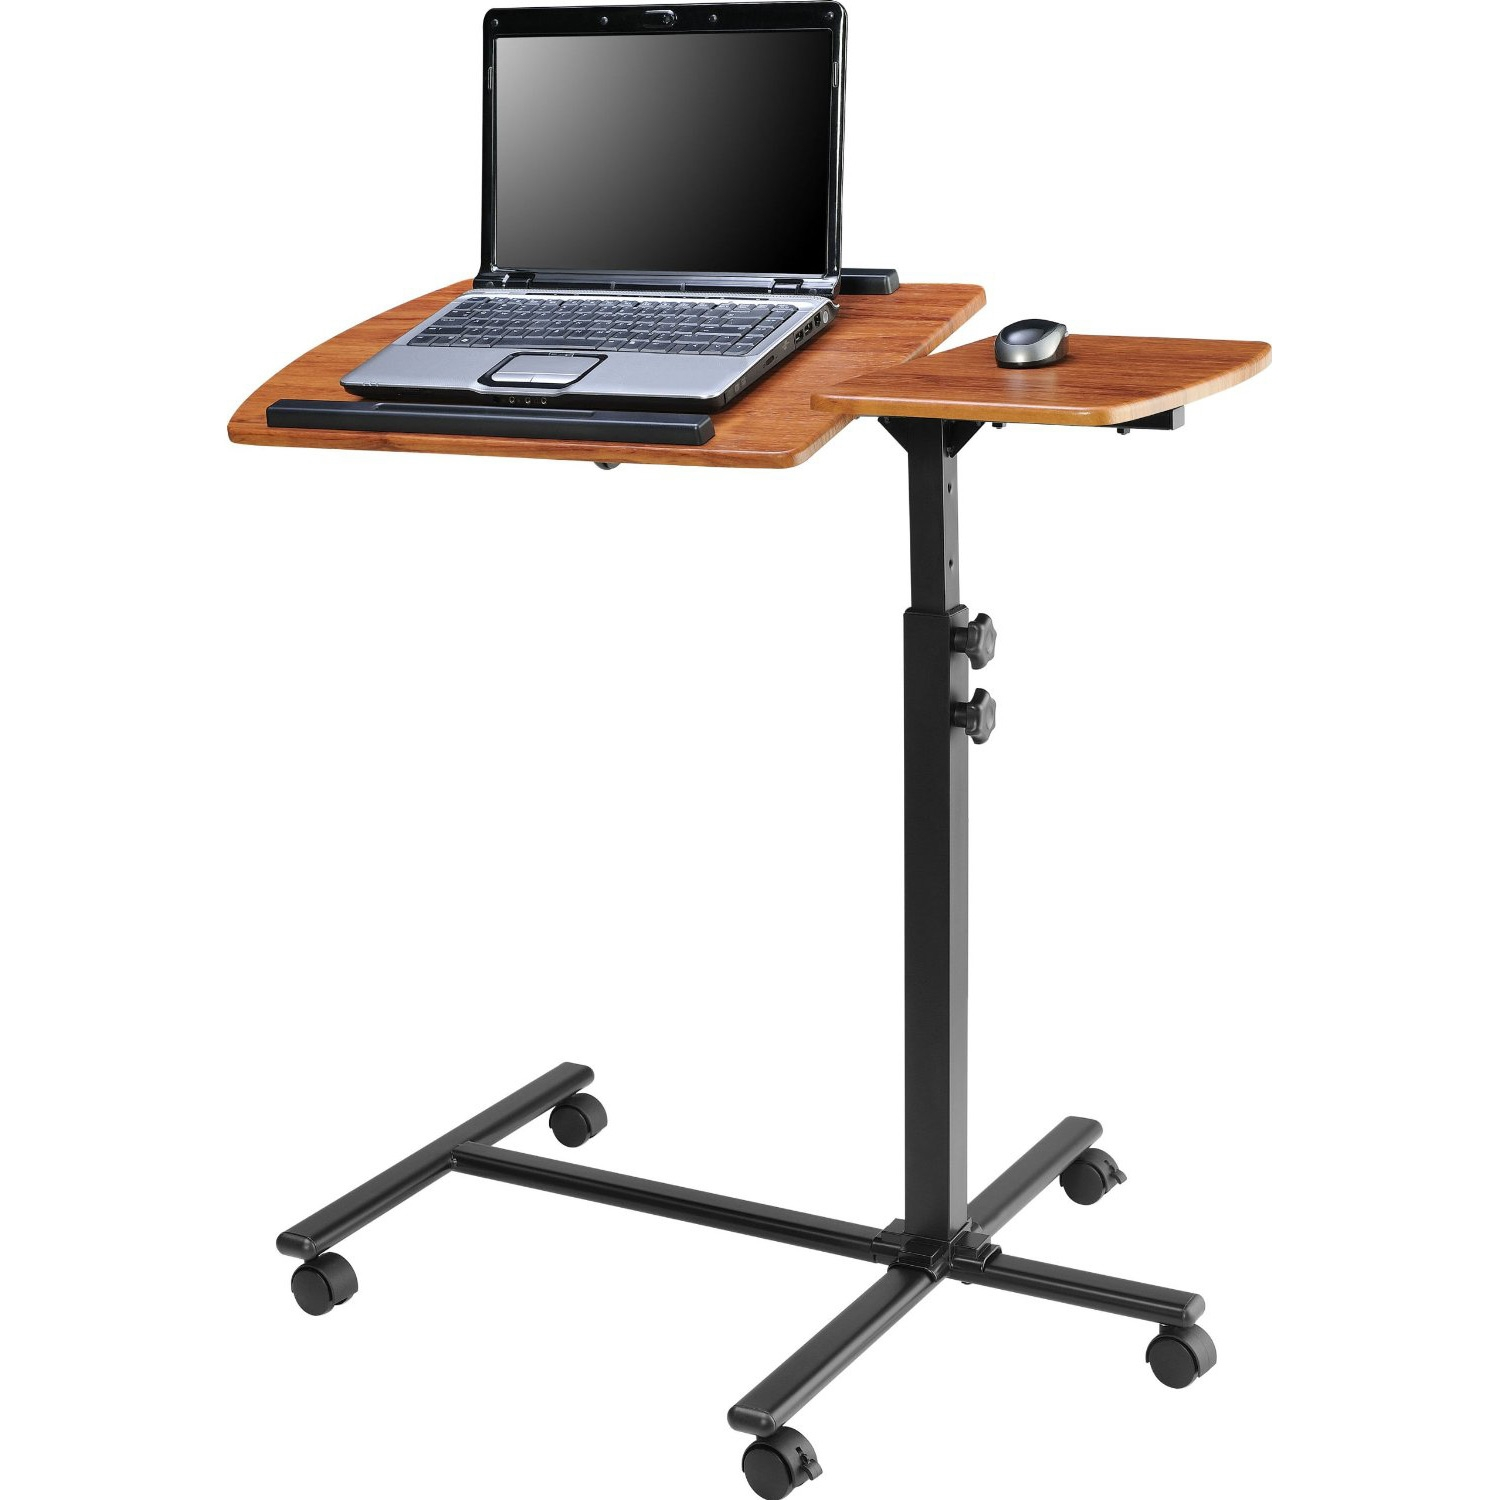 Adjustable Height Laptop Computer Standing Desk Cart with Wheels